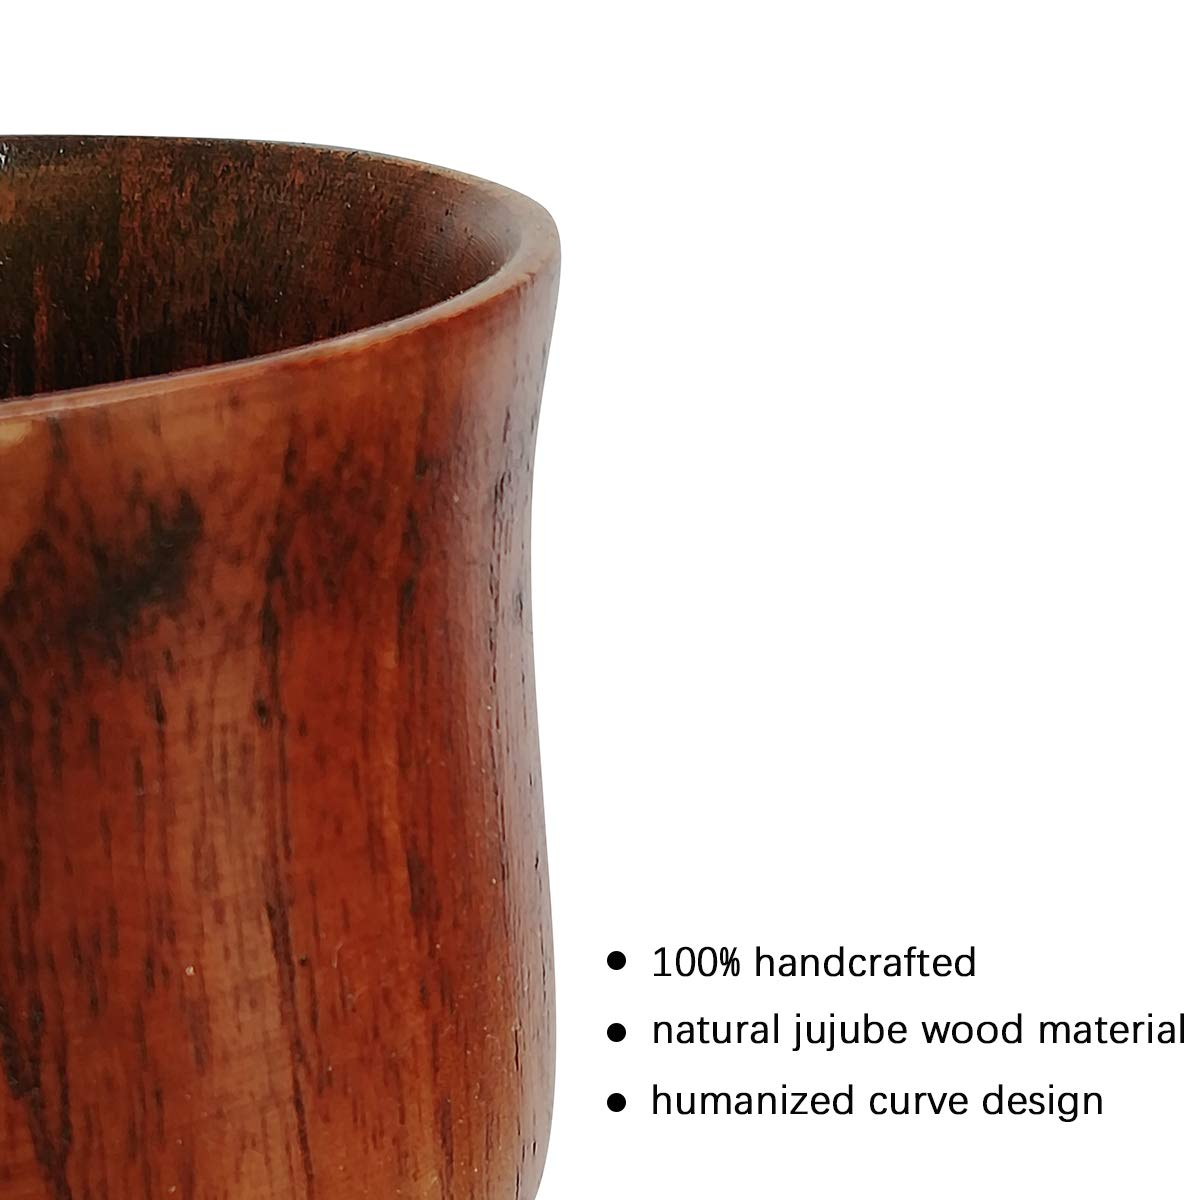 Details about  /Tea Cup Natural Classical Handcrafted Jujube Cup Beer Coffee Milk Juice Wood Cup